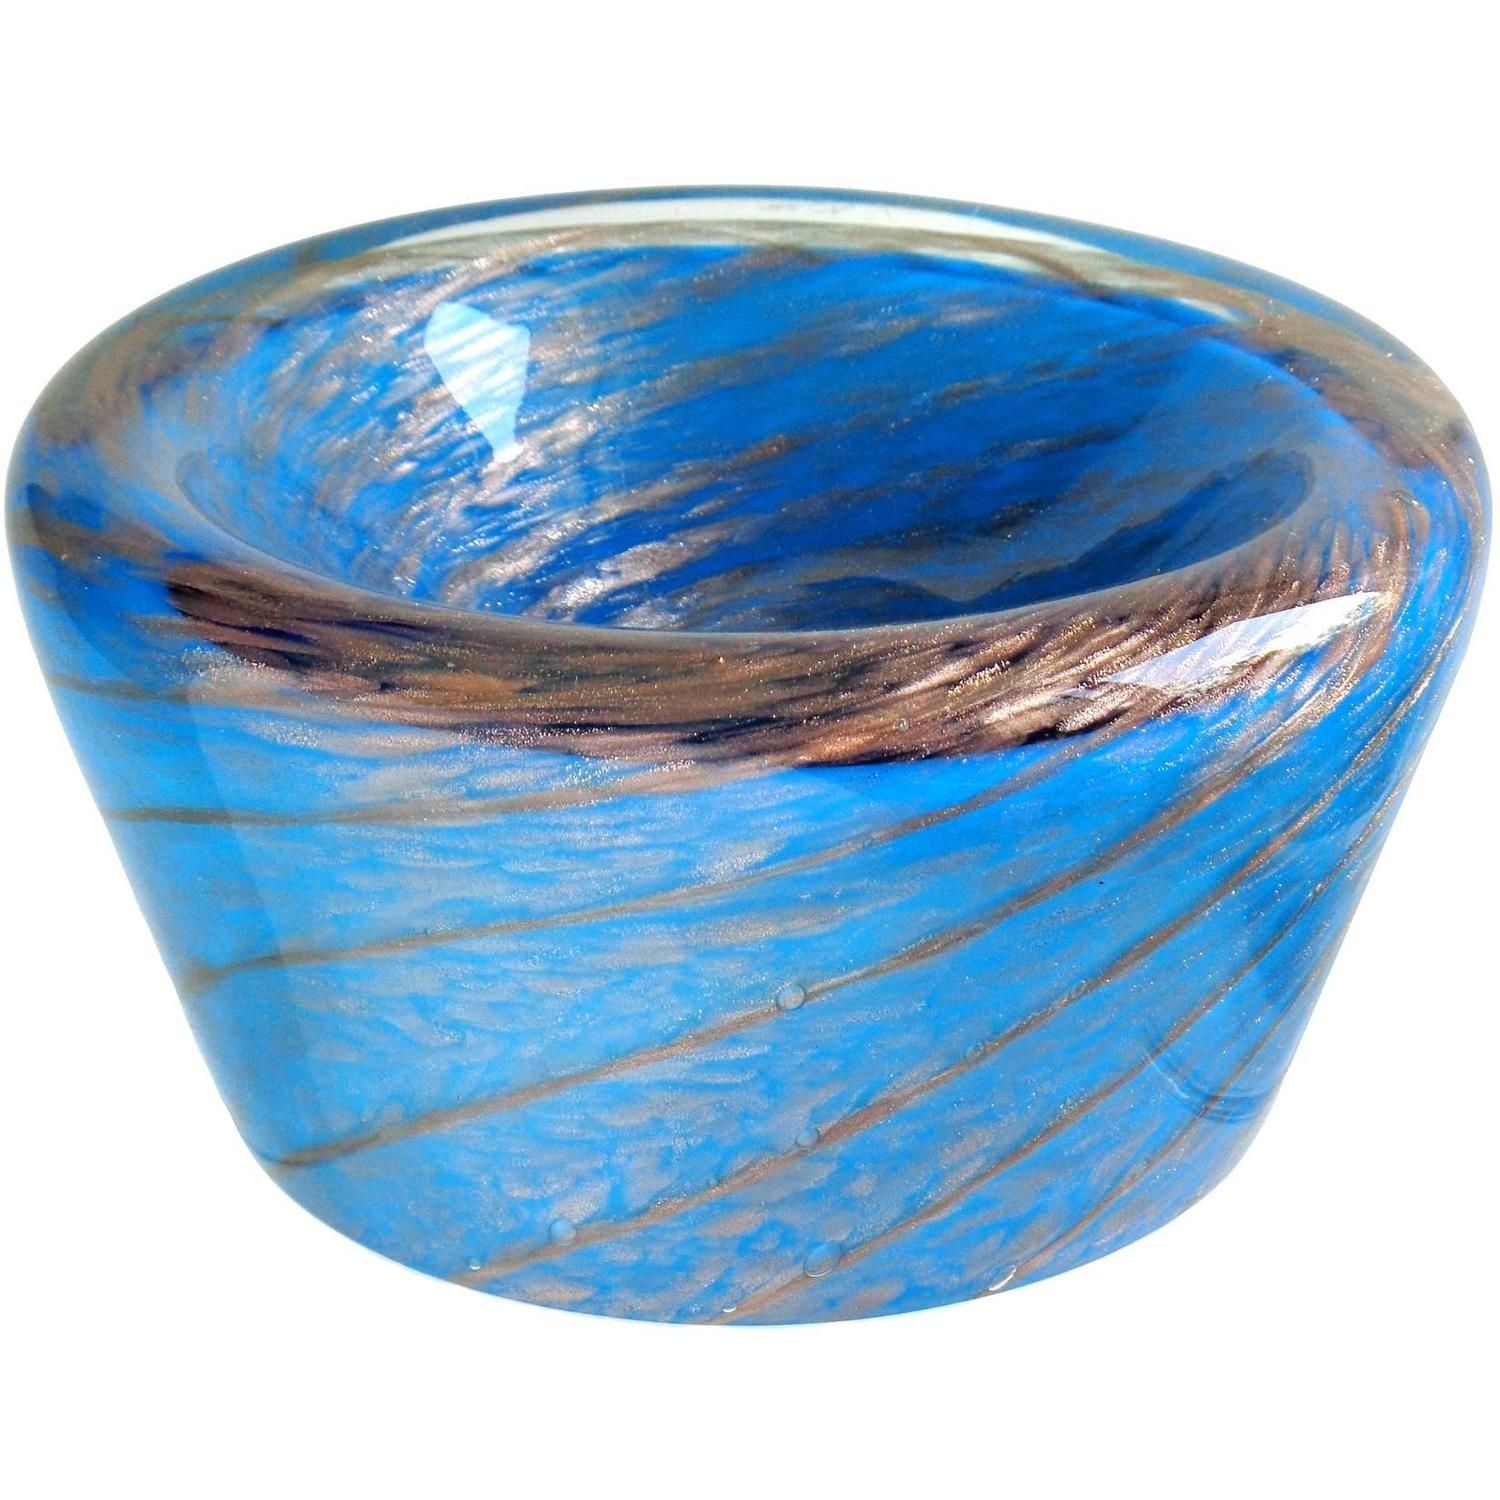 Blue Decorative Bowl Fratelli Toso Murano Blue Aventurine Swirl Italian Art Glass Bowl